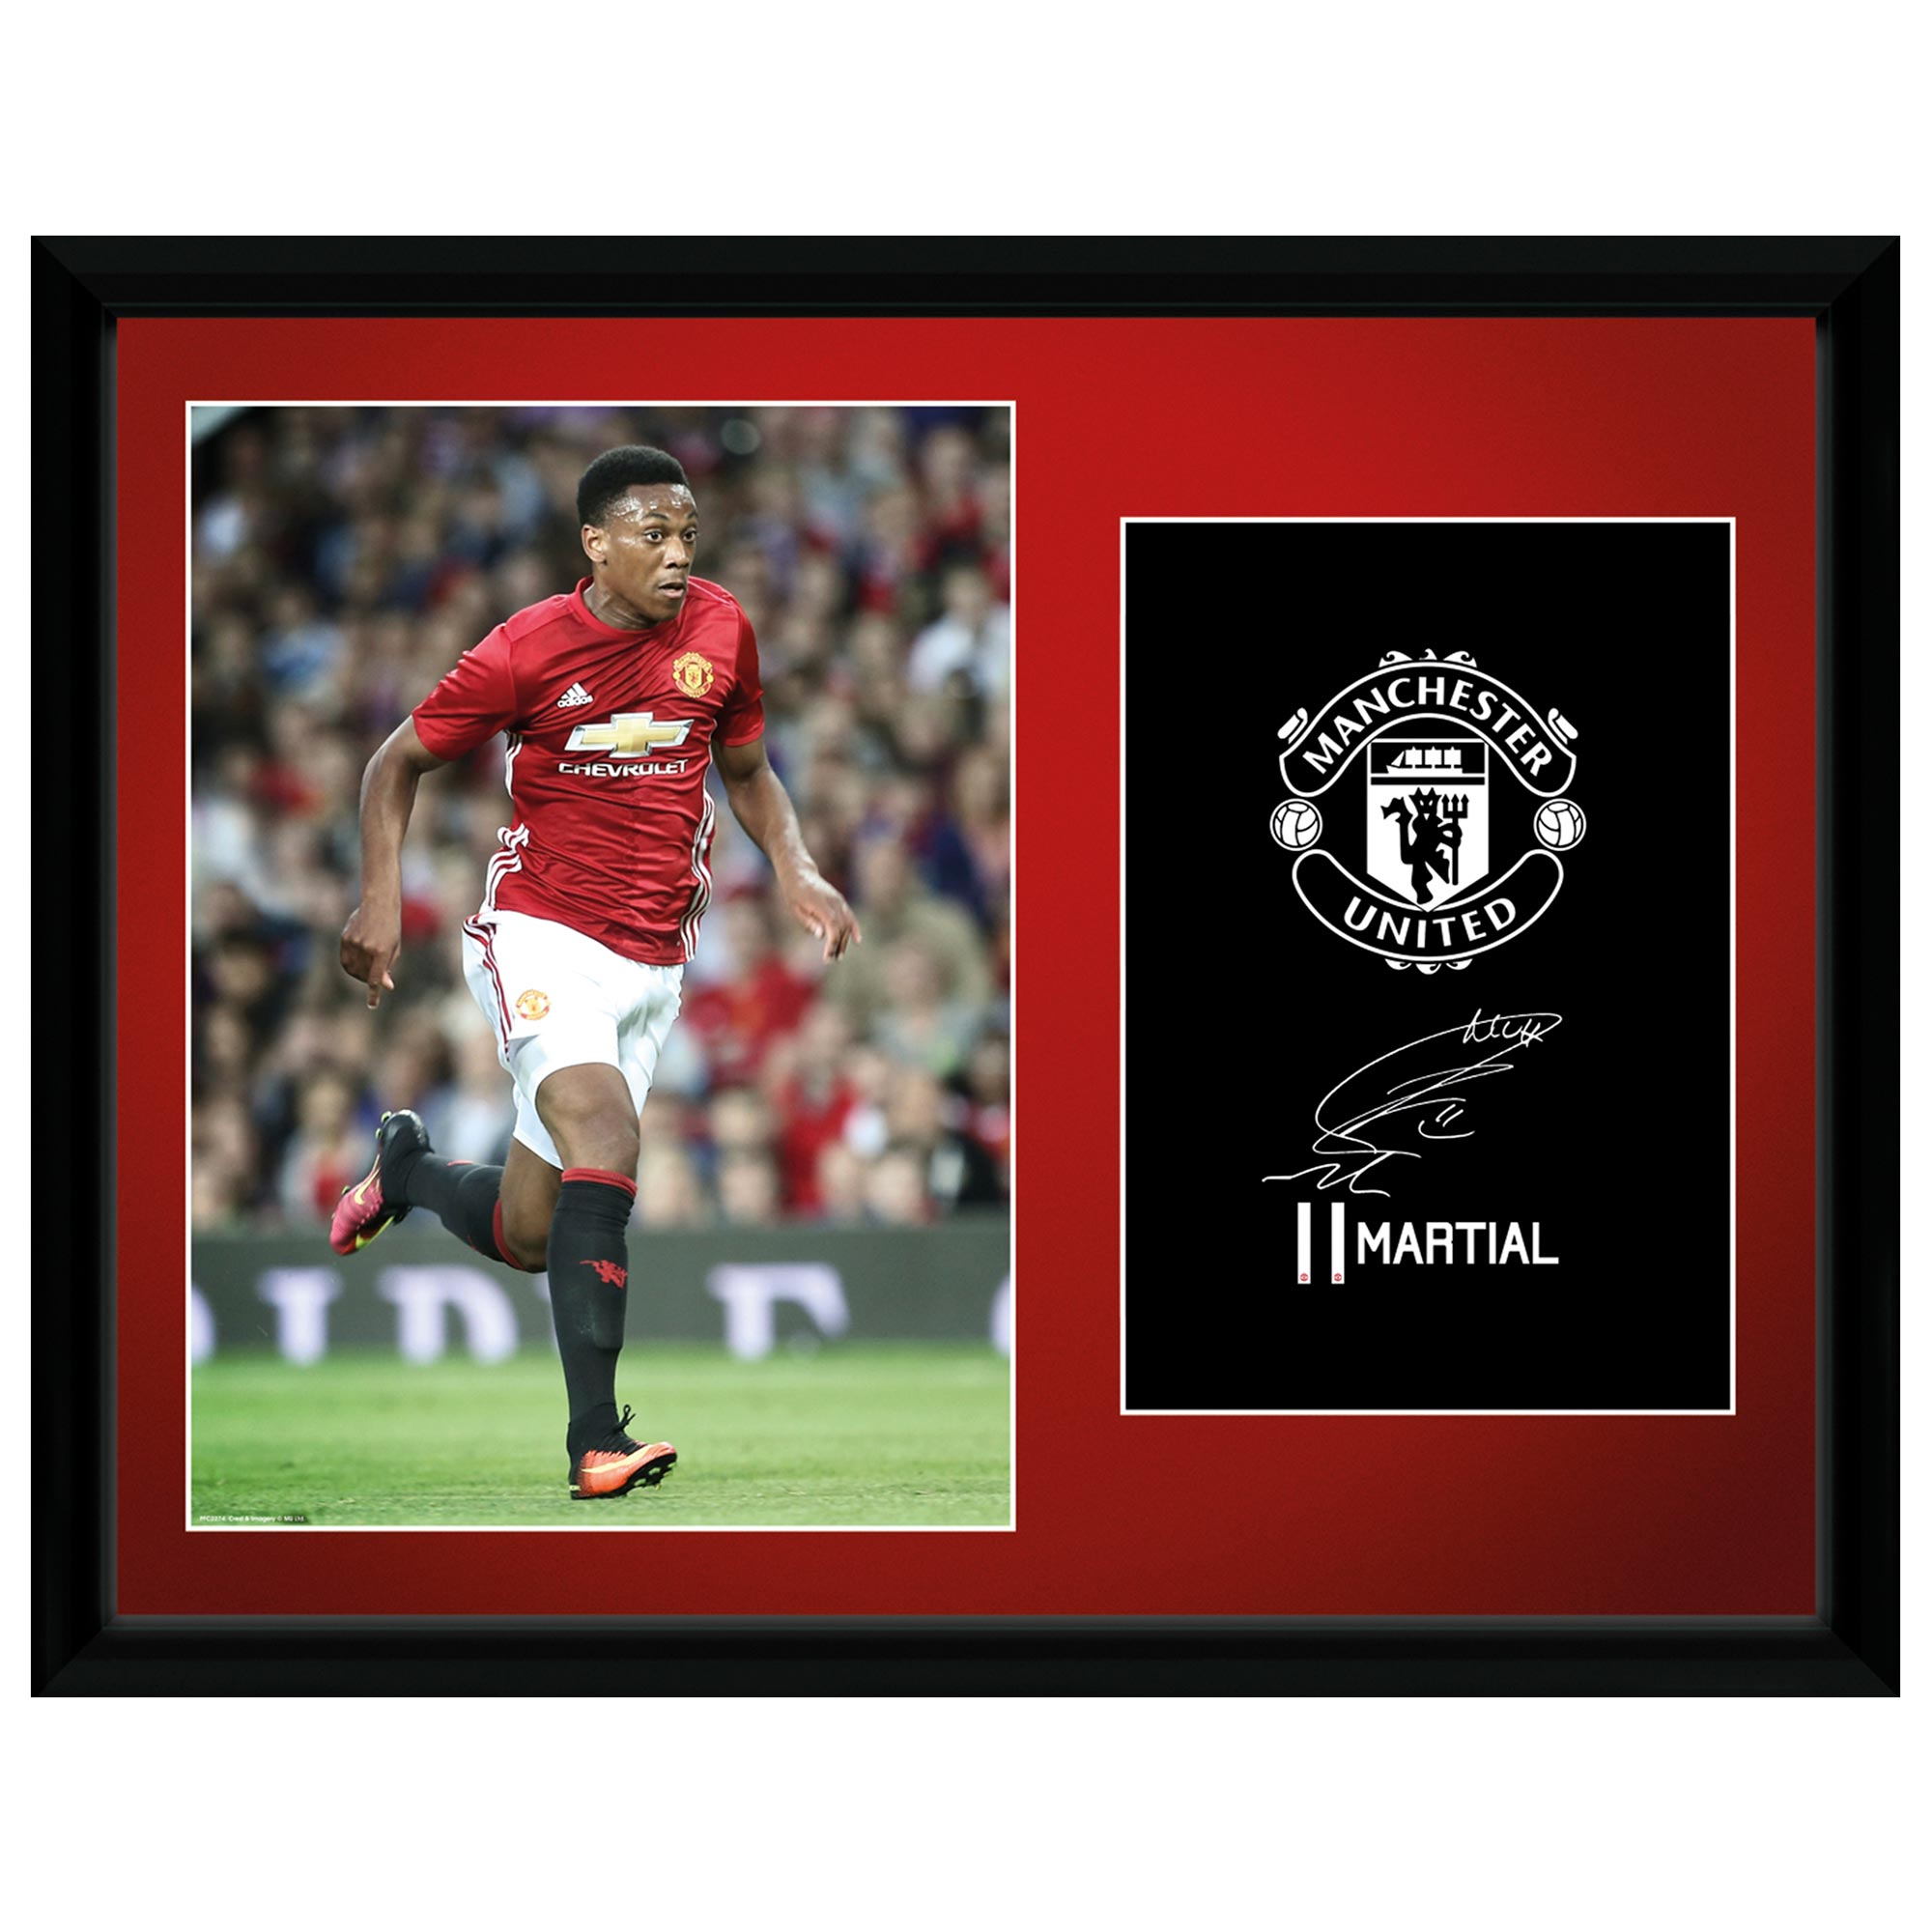 Manchester United 16-17 Martial Framed Print 16 x 12